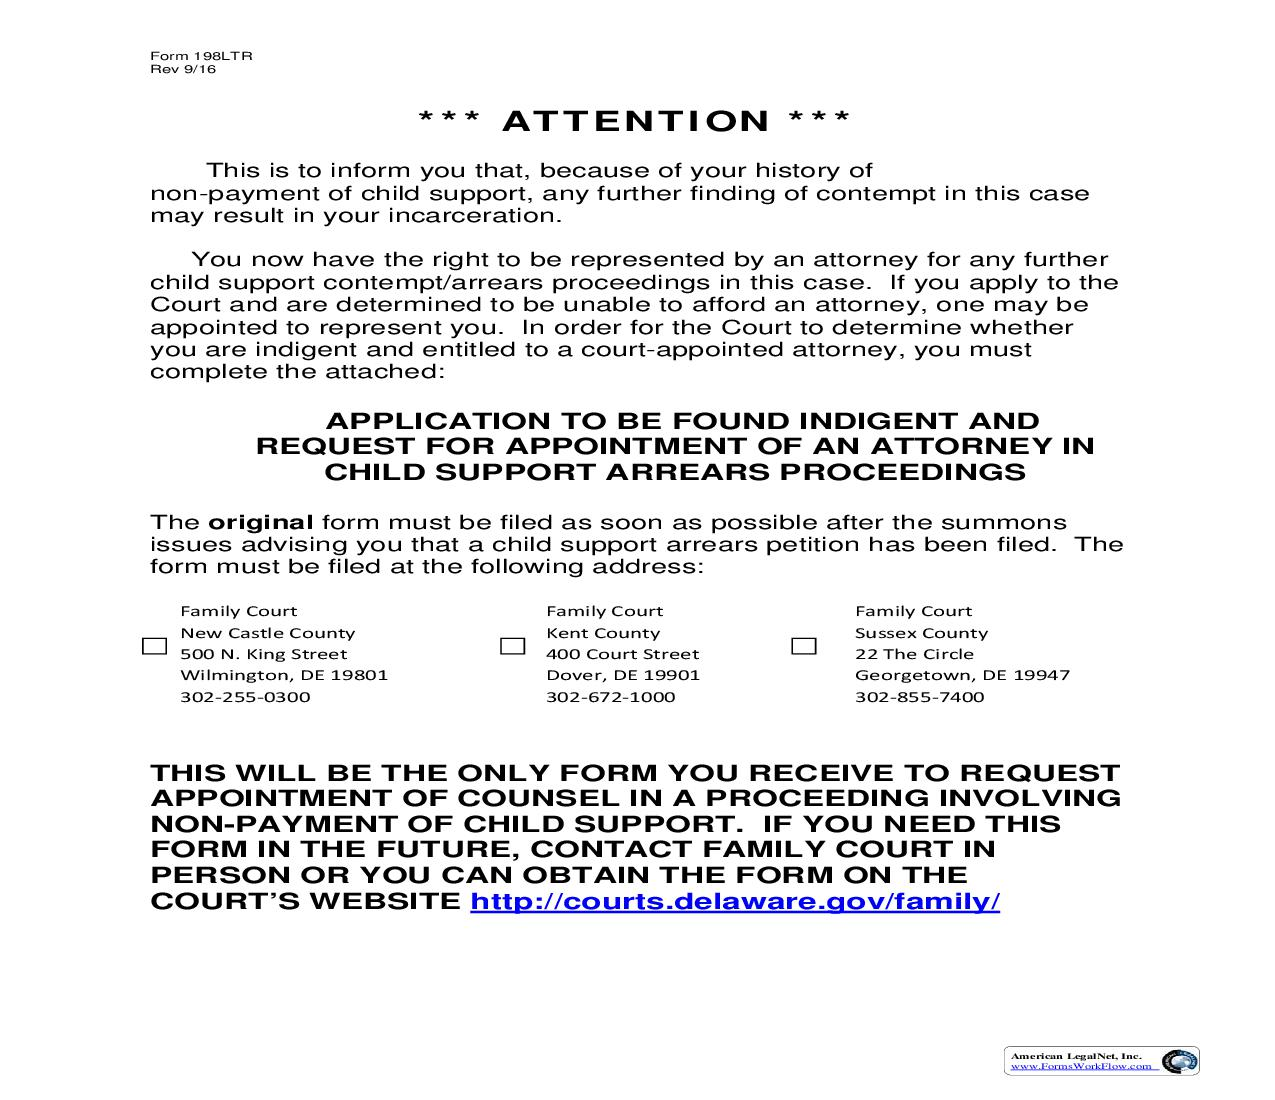 Attention Letter-Application To Be Found Indignet {198LTR} | Pdf Fpdf Doc Docx | Delaware